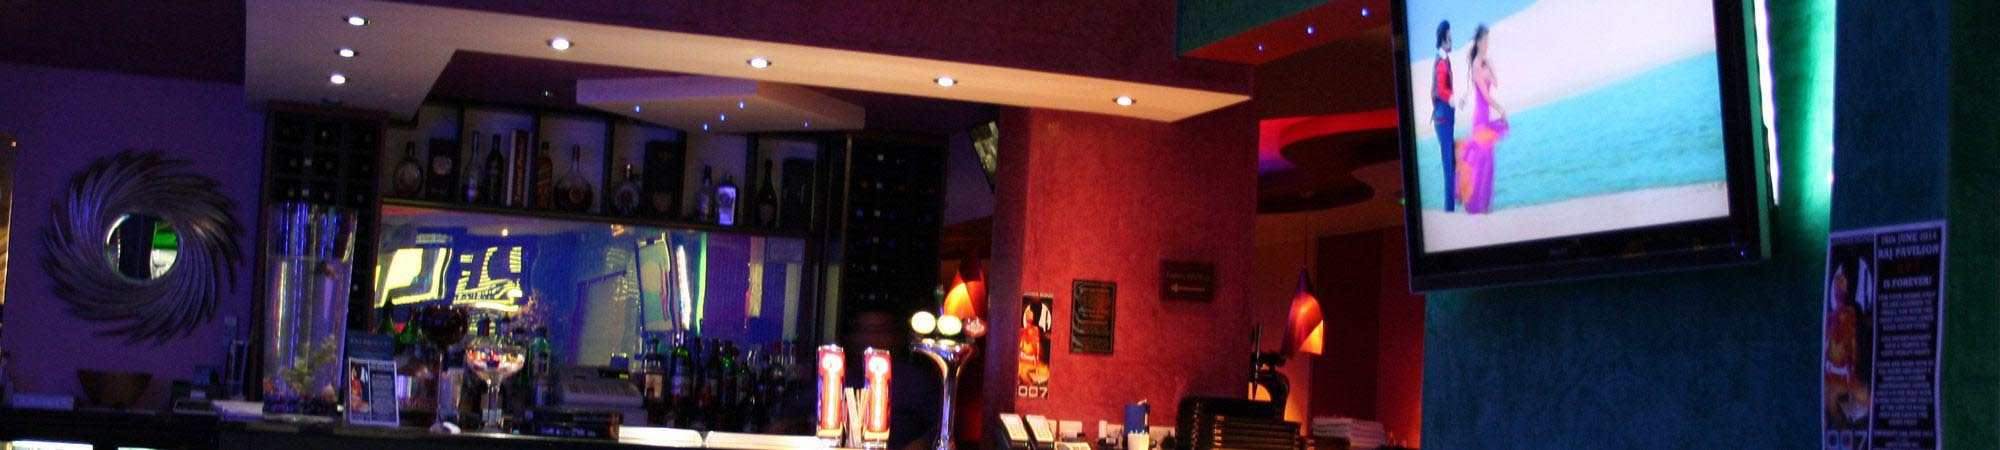 Mumbai Lounge bar